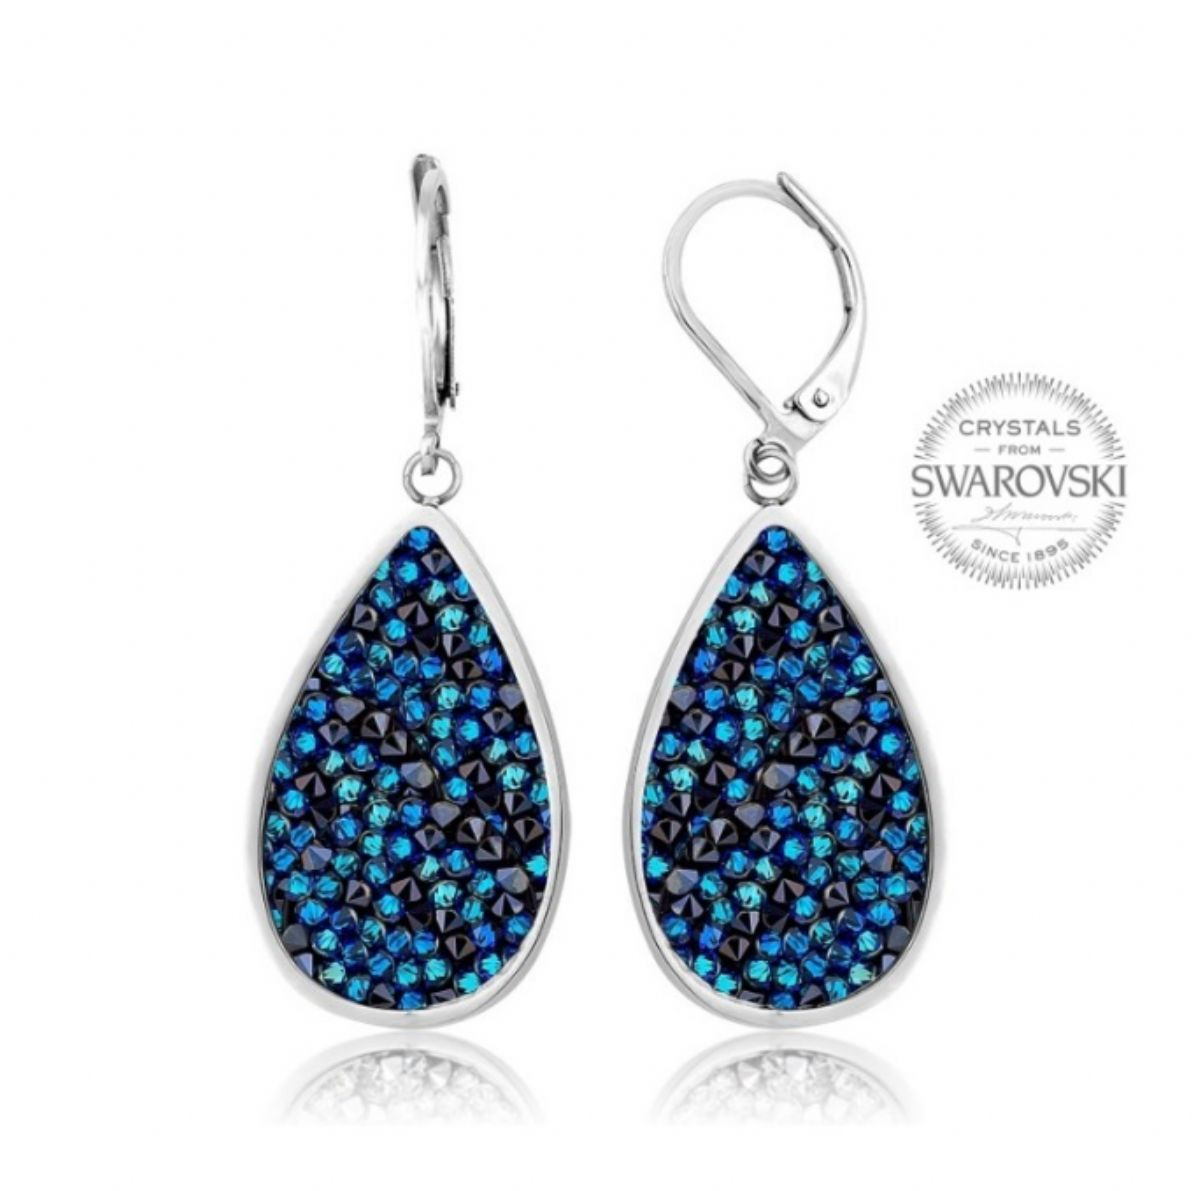 Náušnice Swarovski Elements - Rocks pear Bermuda blue 1/1